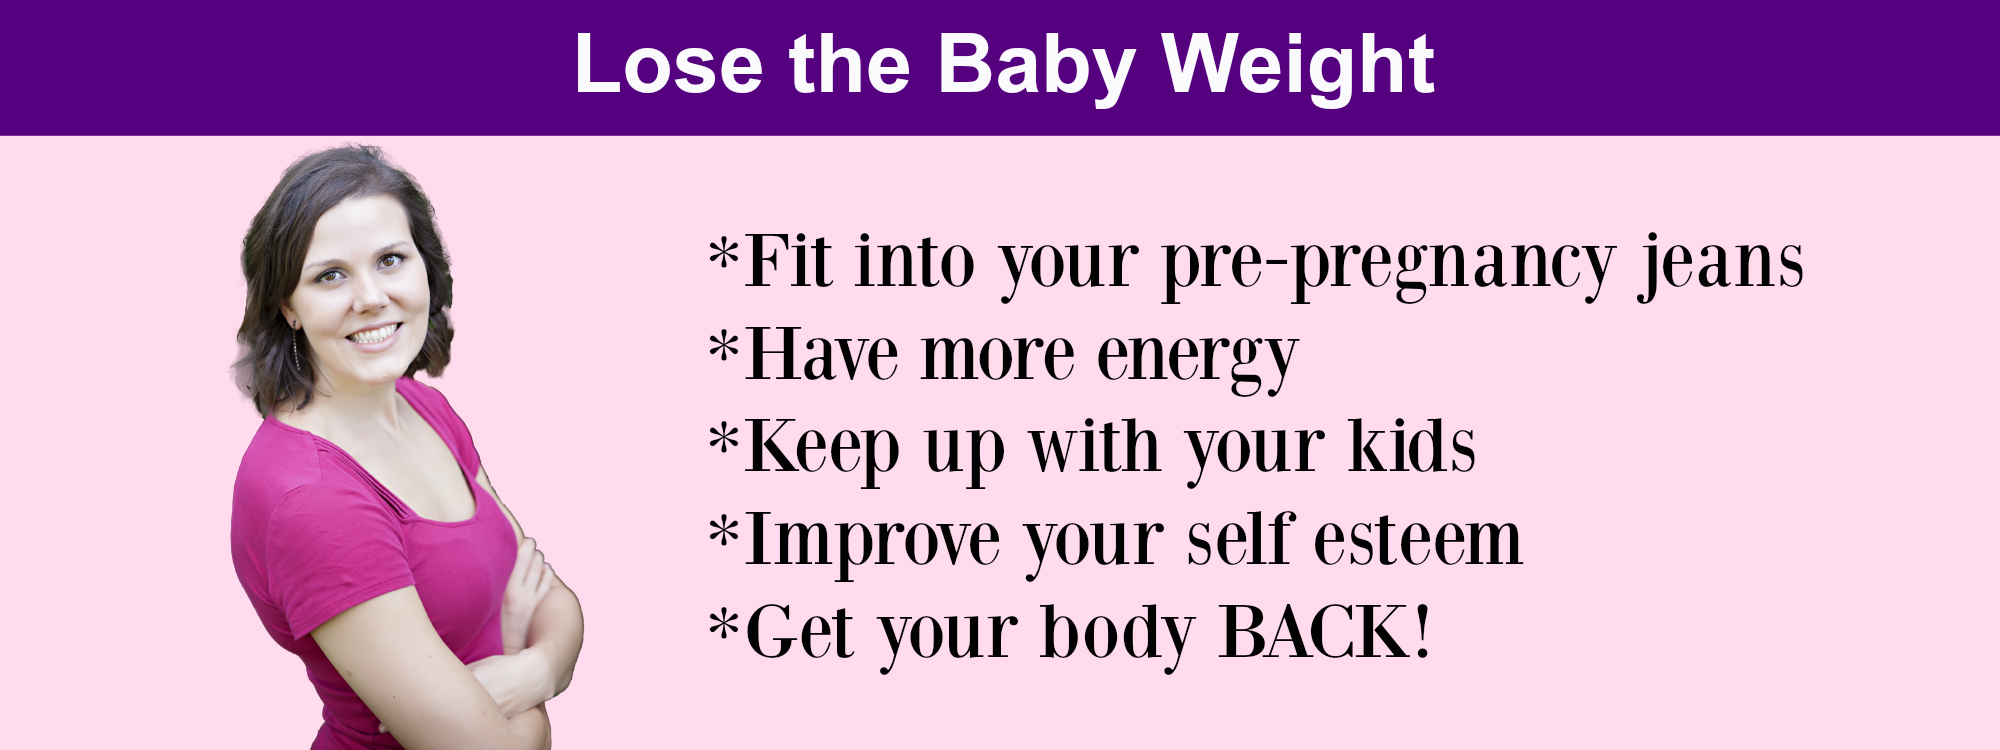 lose the baby weight 1